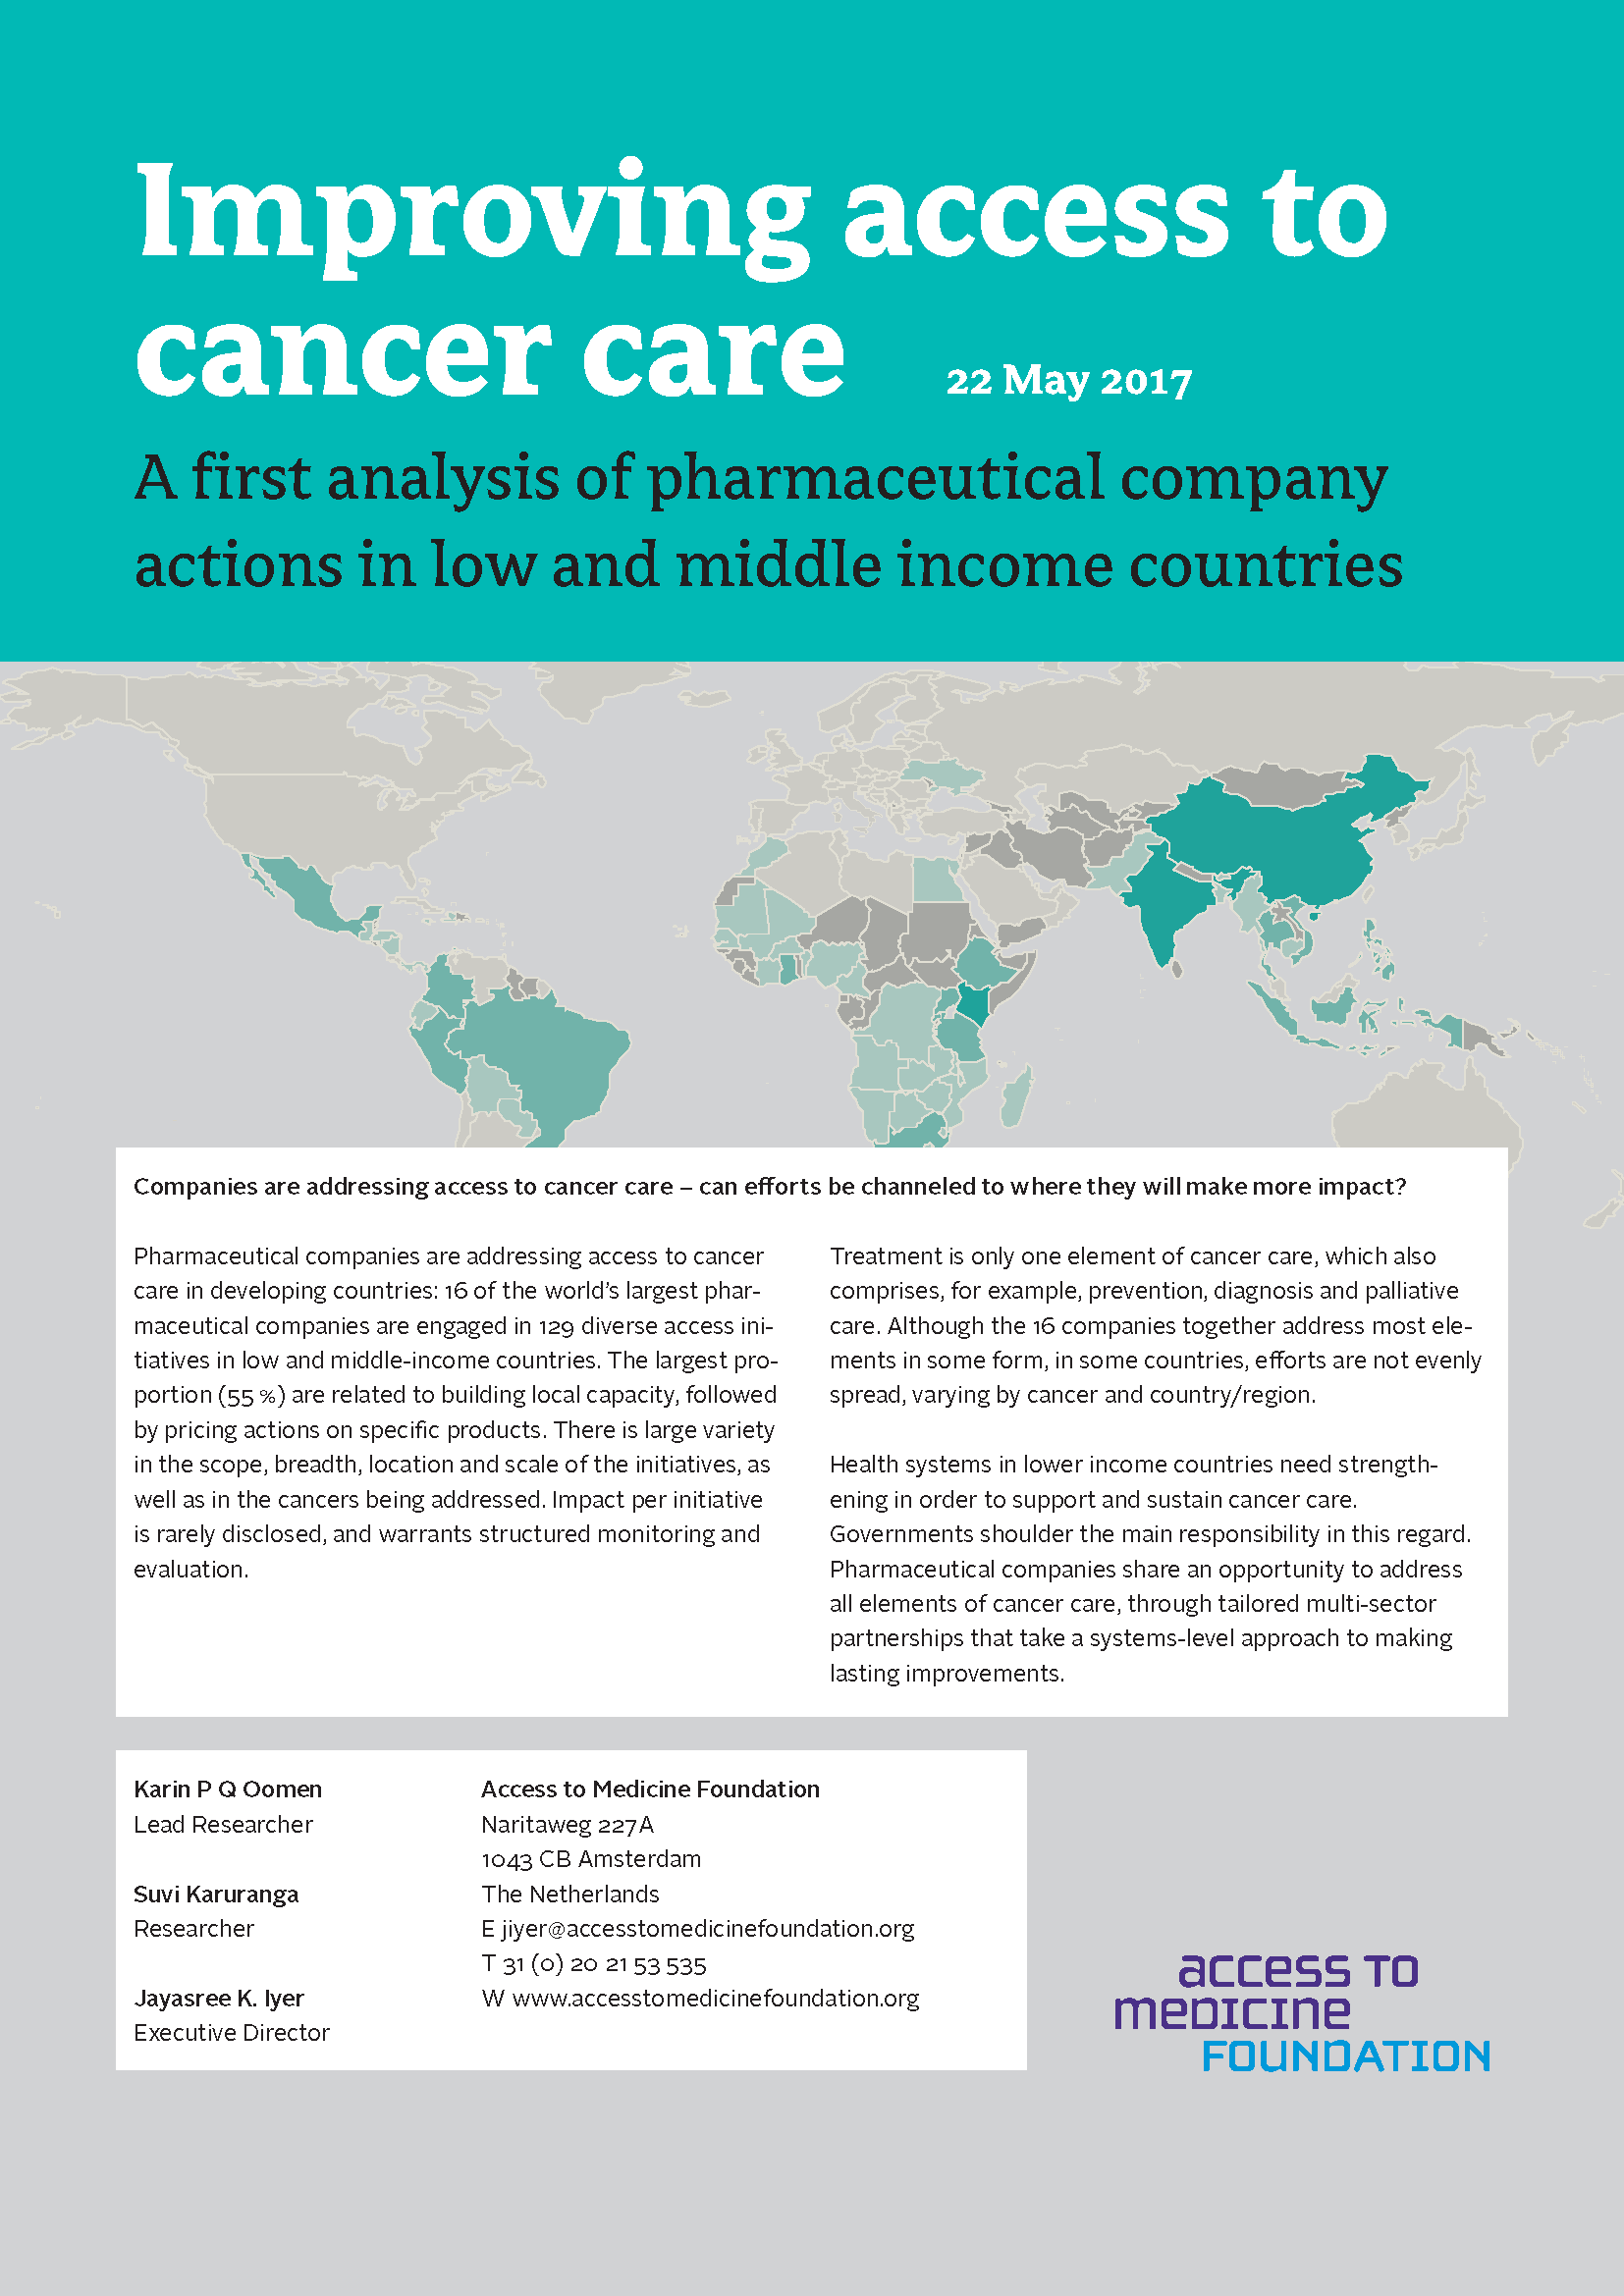 Improving Access To Cancer Care: A First Analysis Of Pharmaceutical Company Actions In Low And Middle Income Countries